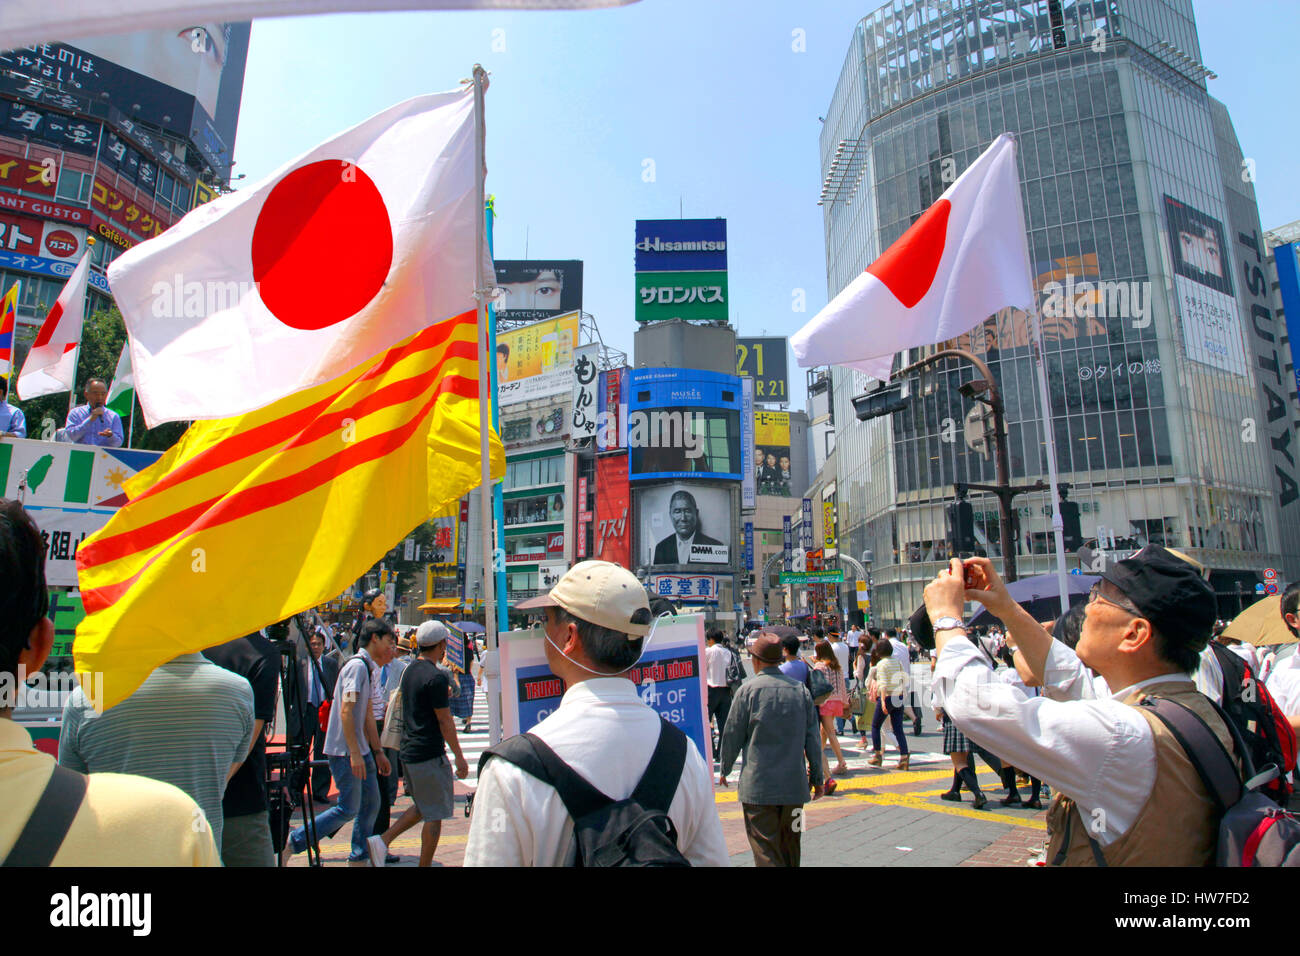 [✓] Etat du Japon Protest-against-chinese-invasion-of-south-east-asia-in-shibuya-tokyo-HW7FD2